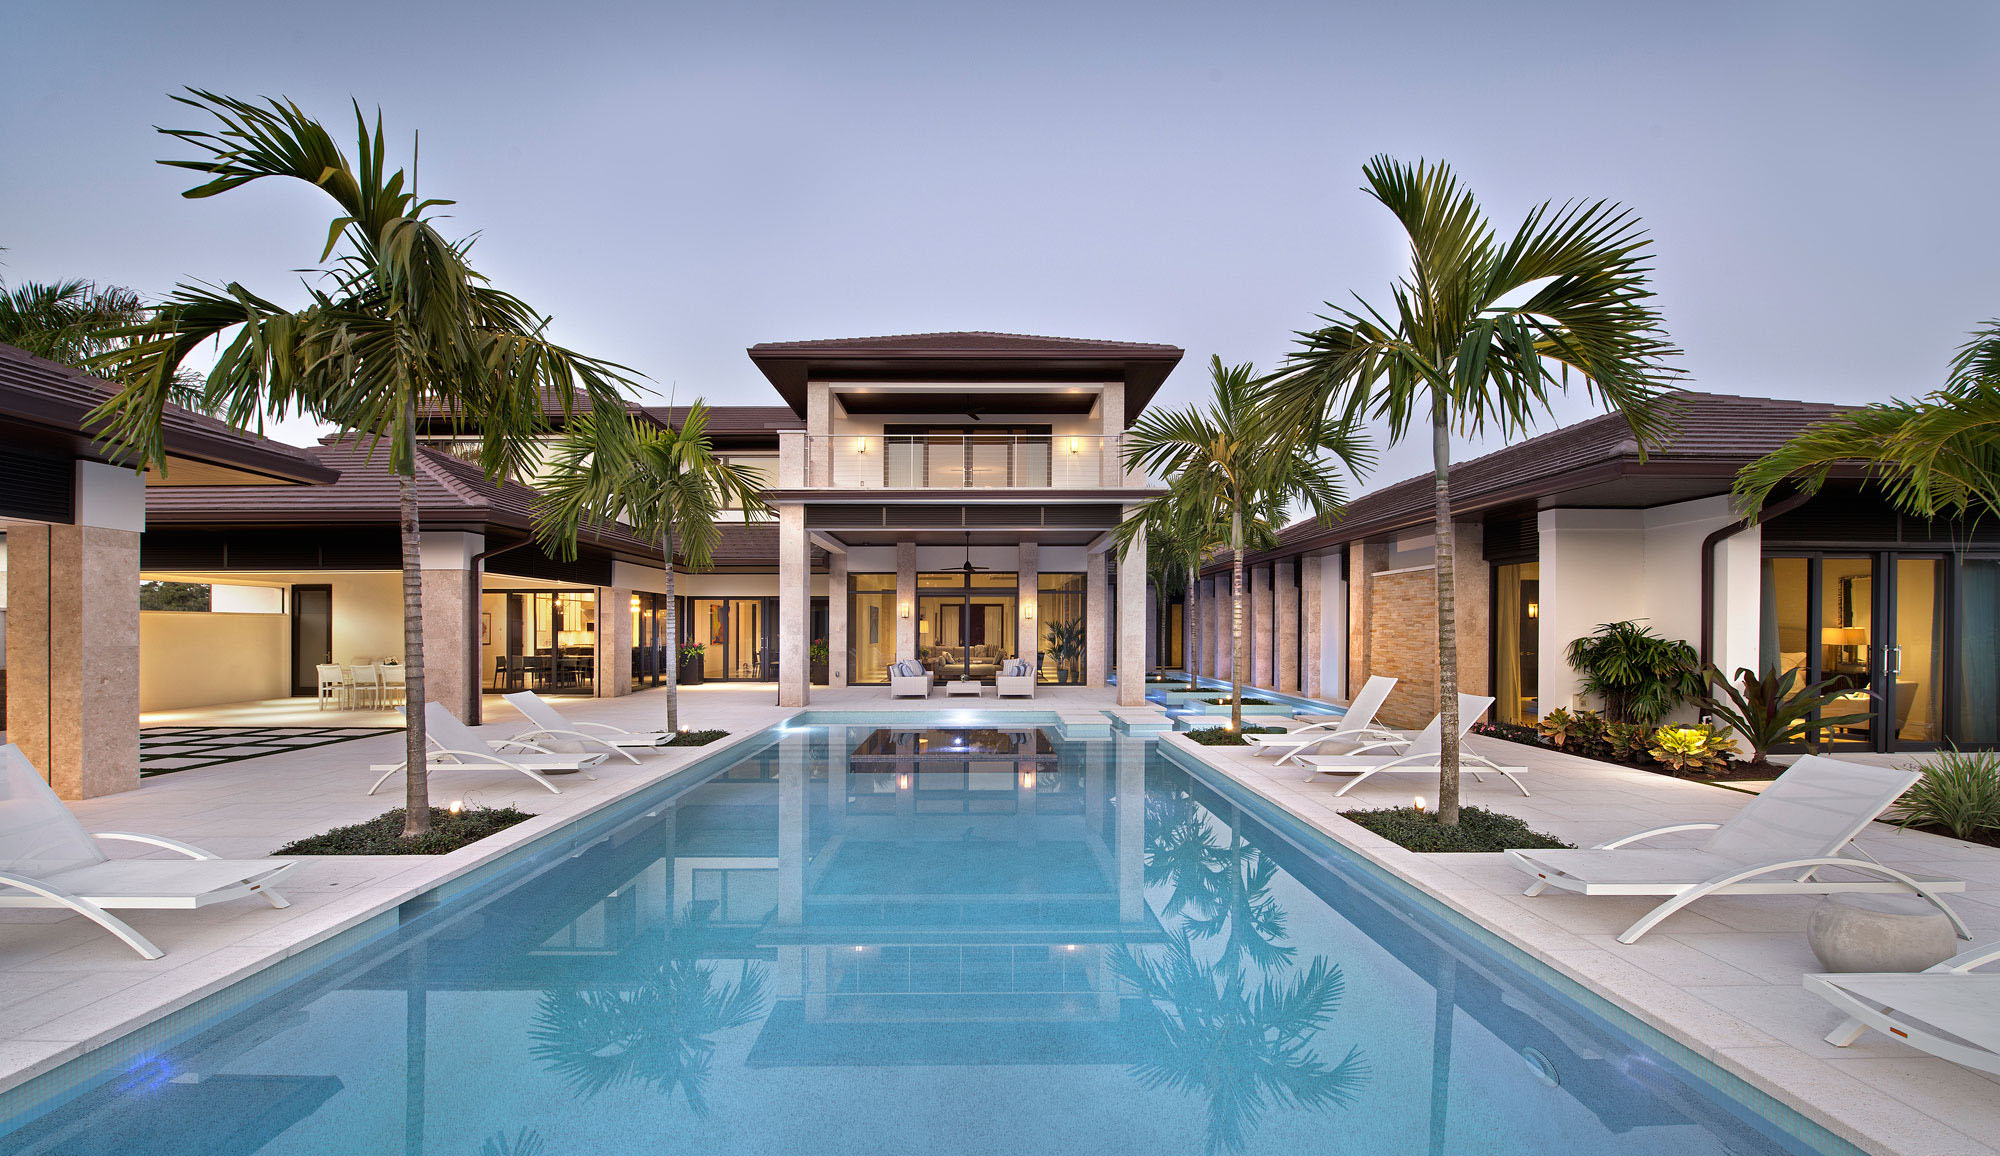 Custom dream home in florida with elegant swimming pool for Luxury houses in florida